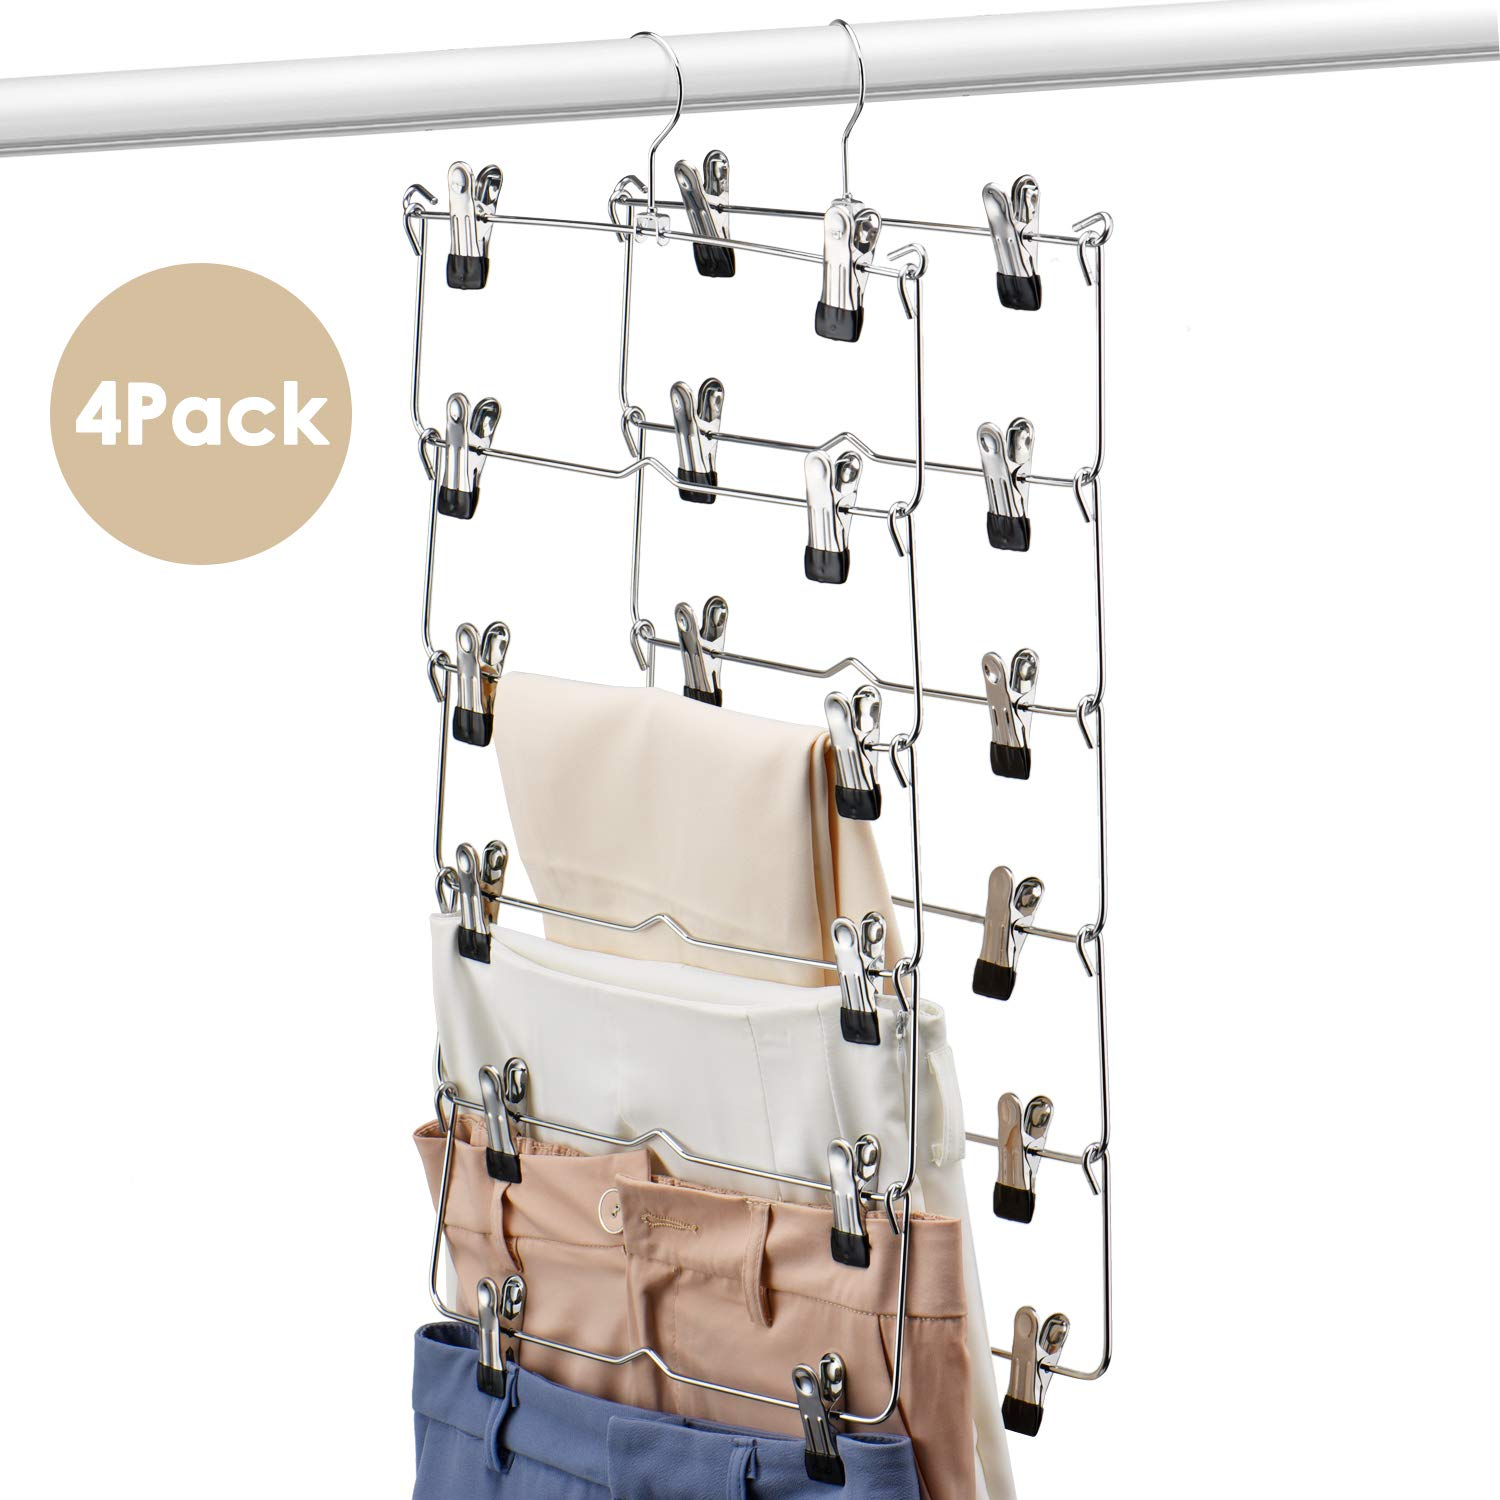 HOUSE DAY 6 Tiers Skirt Hangers with Clips Space Saving Pants Hangers,4 Pack Multi Slack Skirt Hanger with Clips Metal Pants Hnager for Slack, Trouser, Jeans,Towels,Sliver by HOUSE DAY